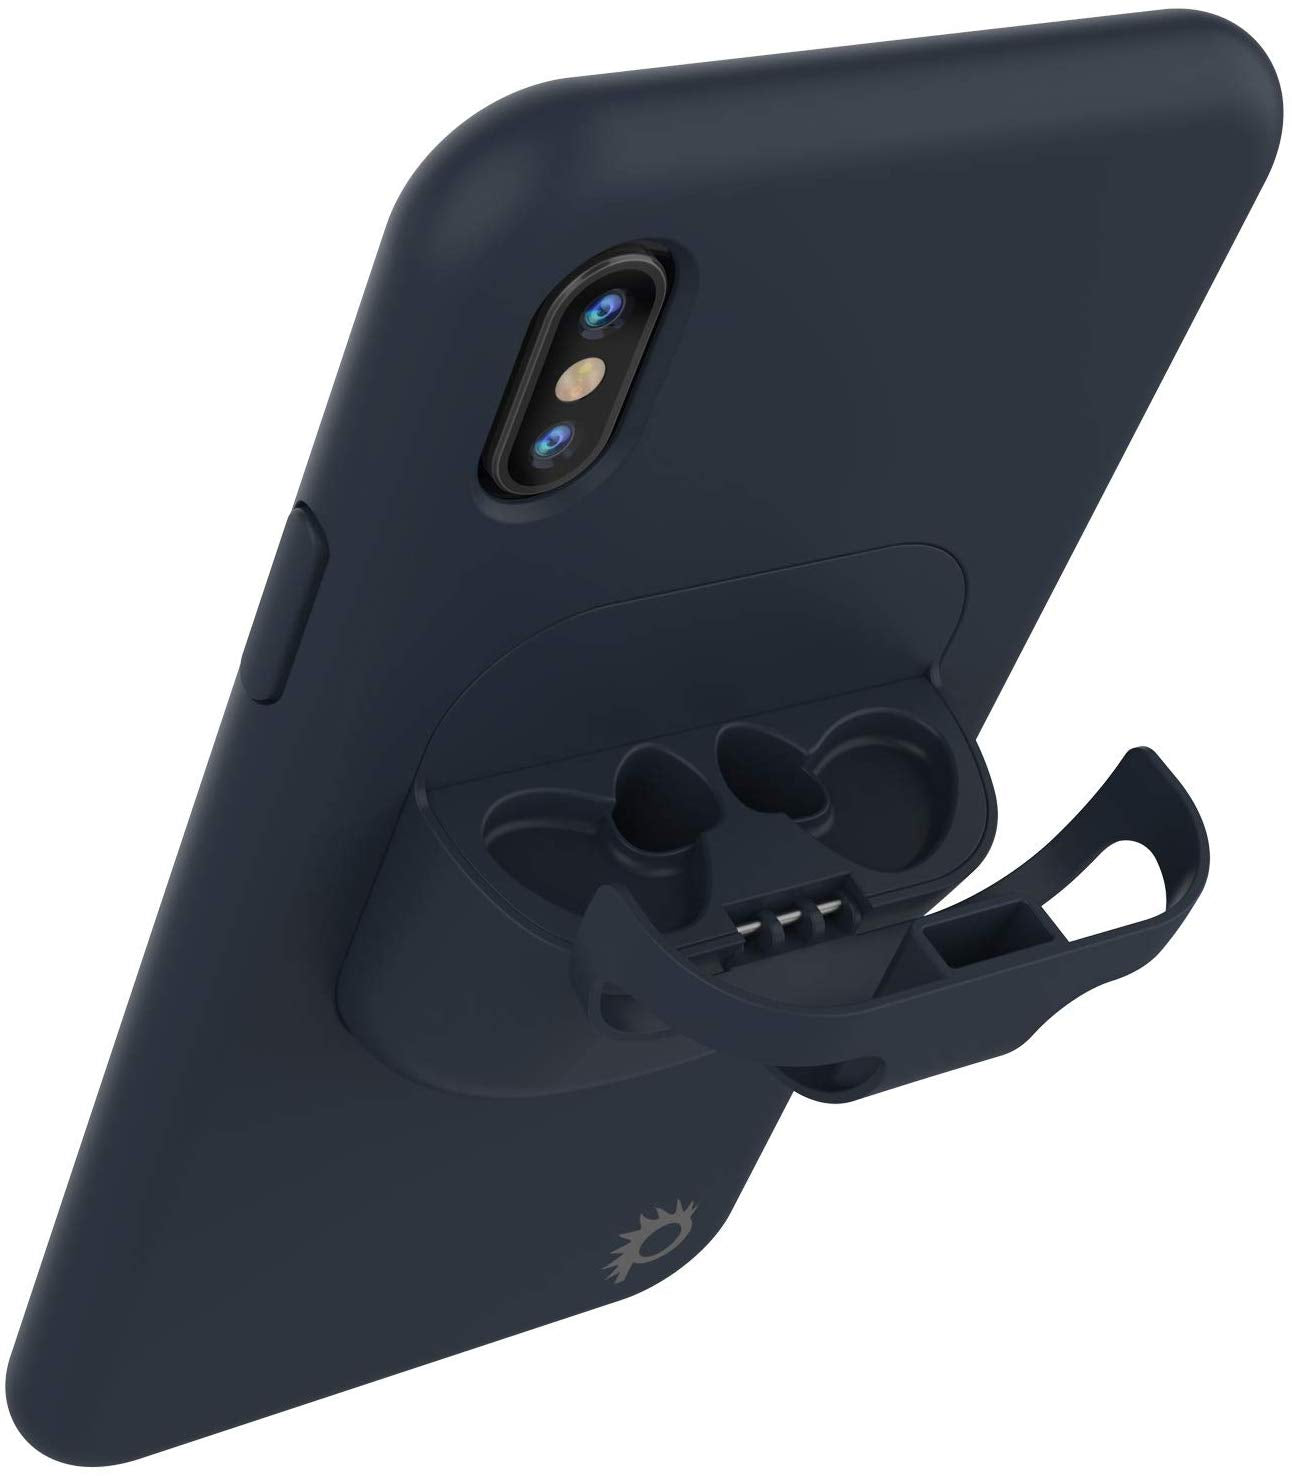 "Punkcase iPhone XS Max Airpods Case Holder (CenterPods Series) | Slim & Durable 2 in 1 Cover Designed for iPhone XS Max (6.1"") 